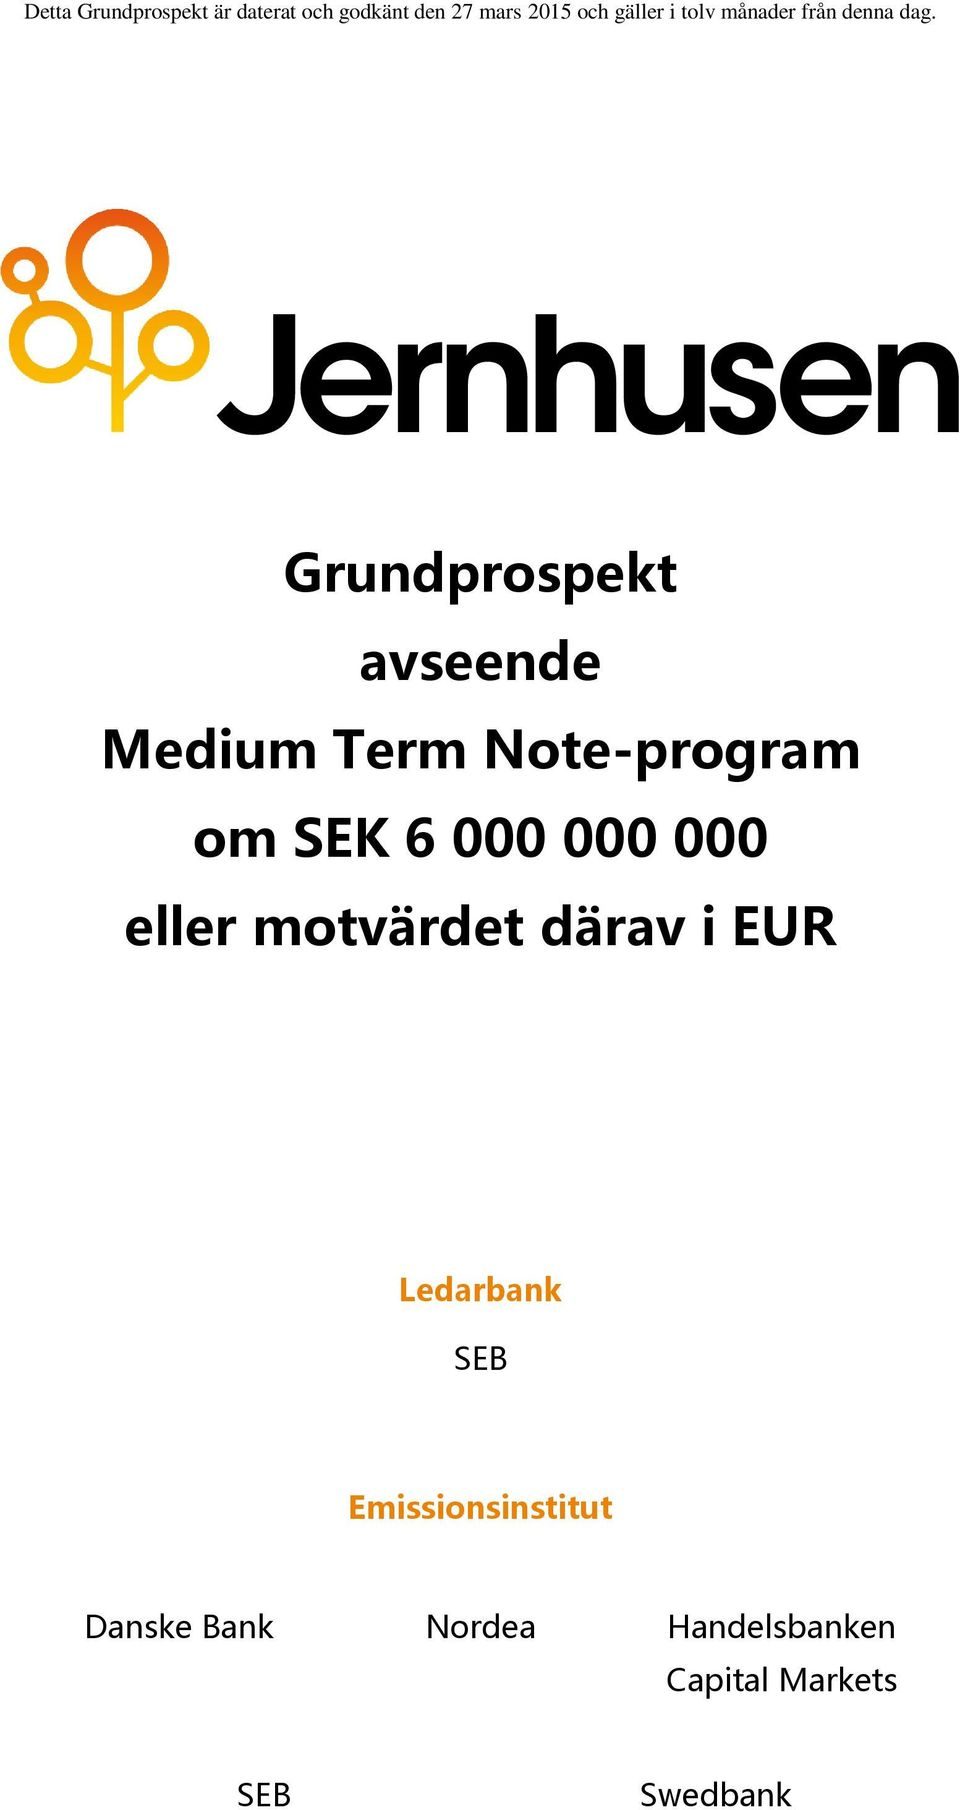 Grundprospekt avseende Medium Term Note-program om SEK 6 000 000 000